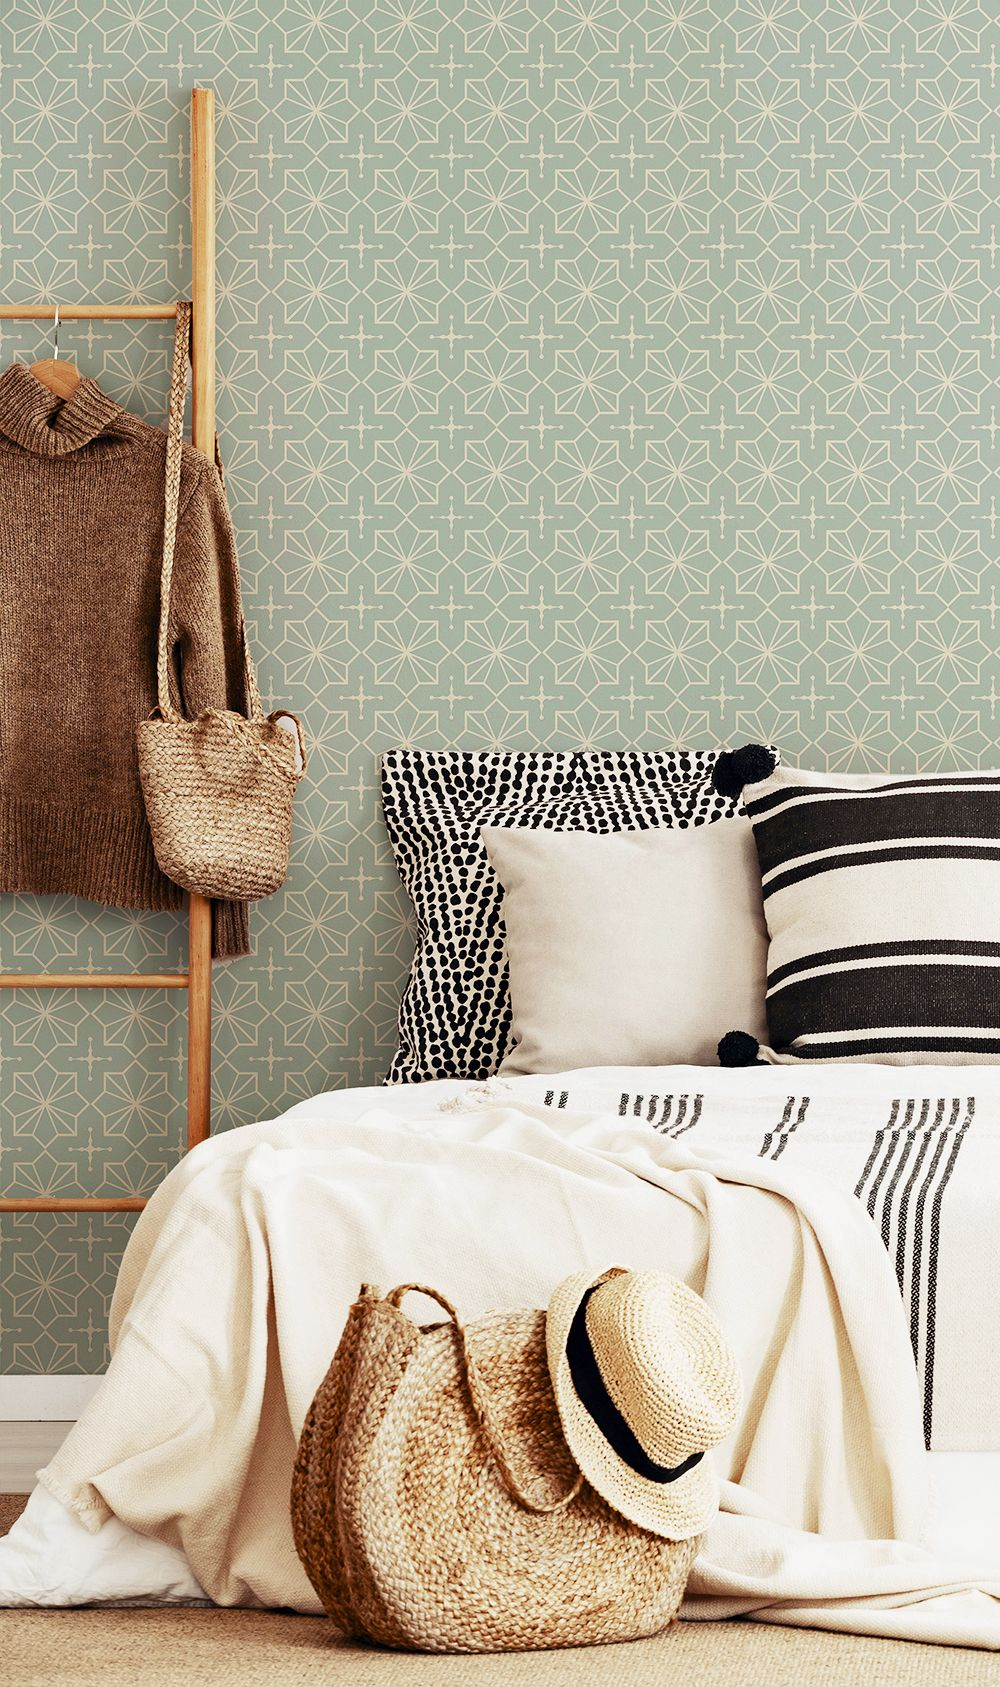 Green And Beige Pattern Geometric Peel And Stick Removable Wallpaper 0948 Removable Wallpaper Geometric Wallpaper Design Traditional Wallpaper